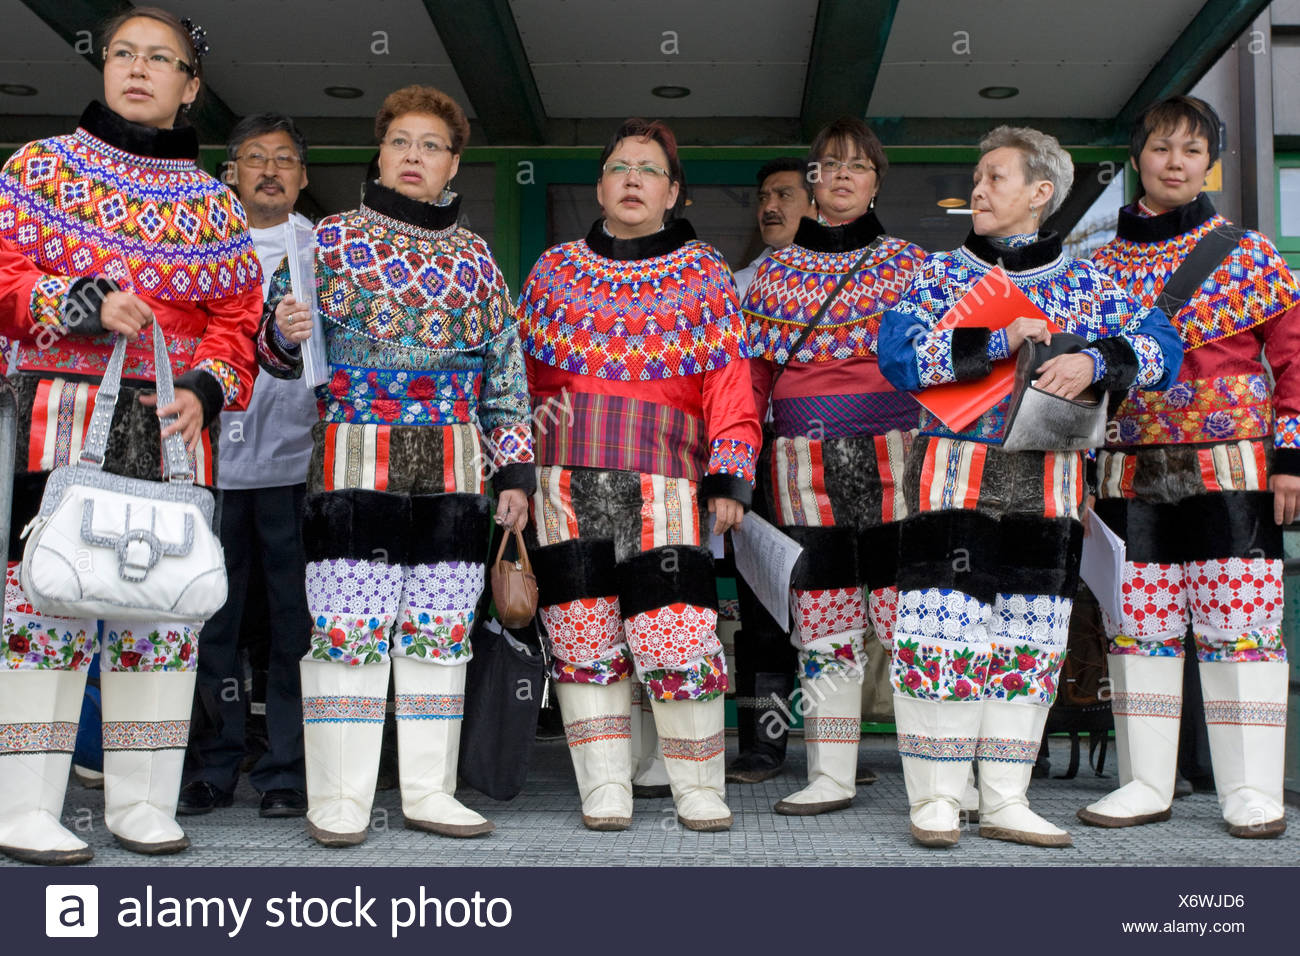 People in traditional costume on the National Day in Greenland, in Nuuk, Greenland. - Stock Image